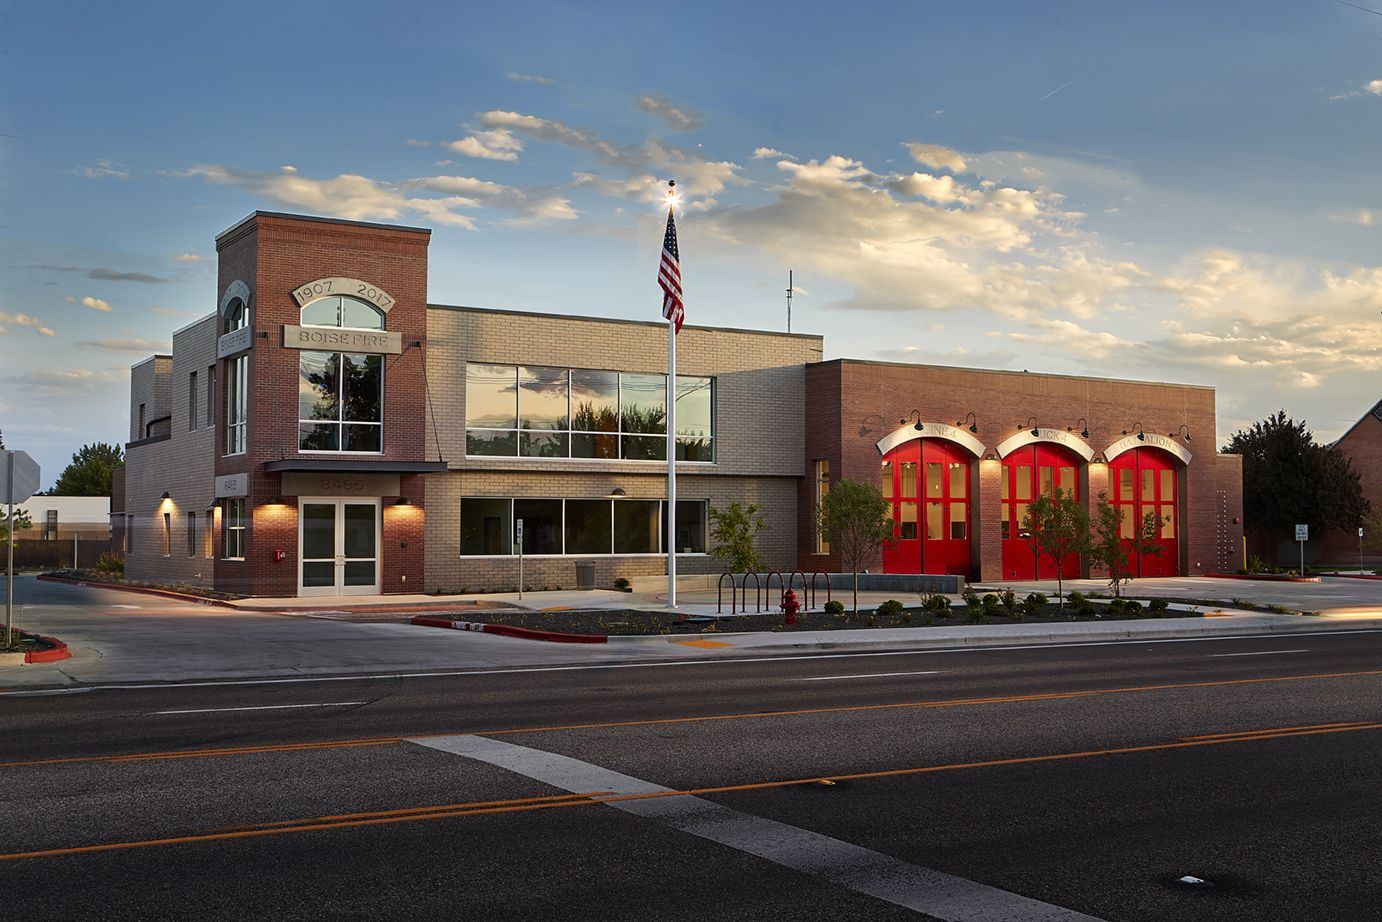 Pin on Fire Station